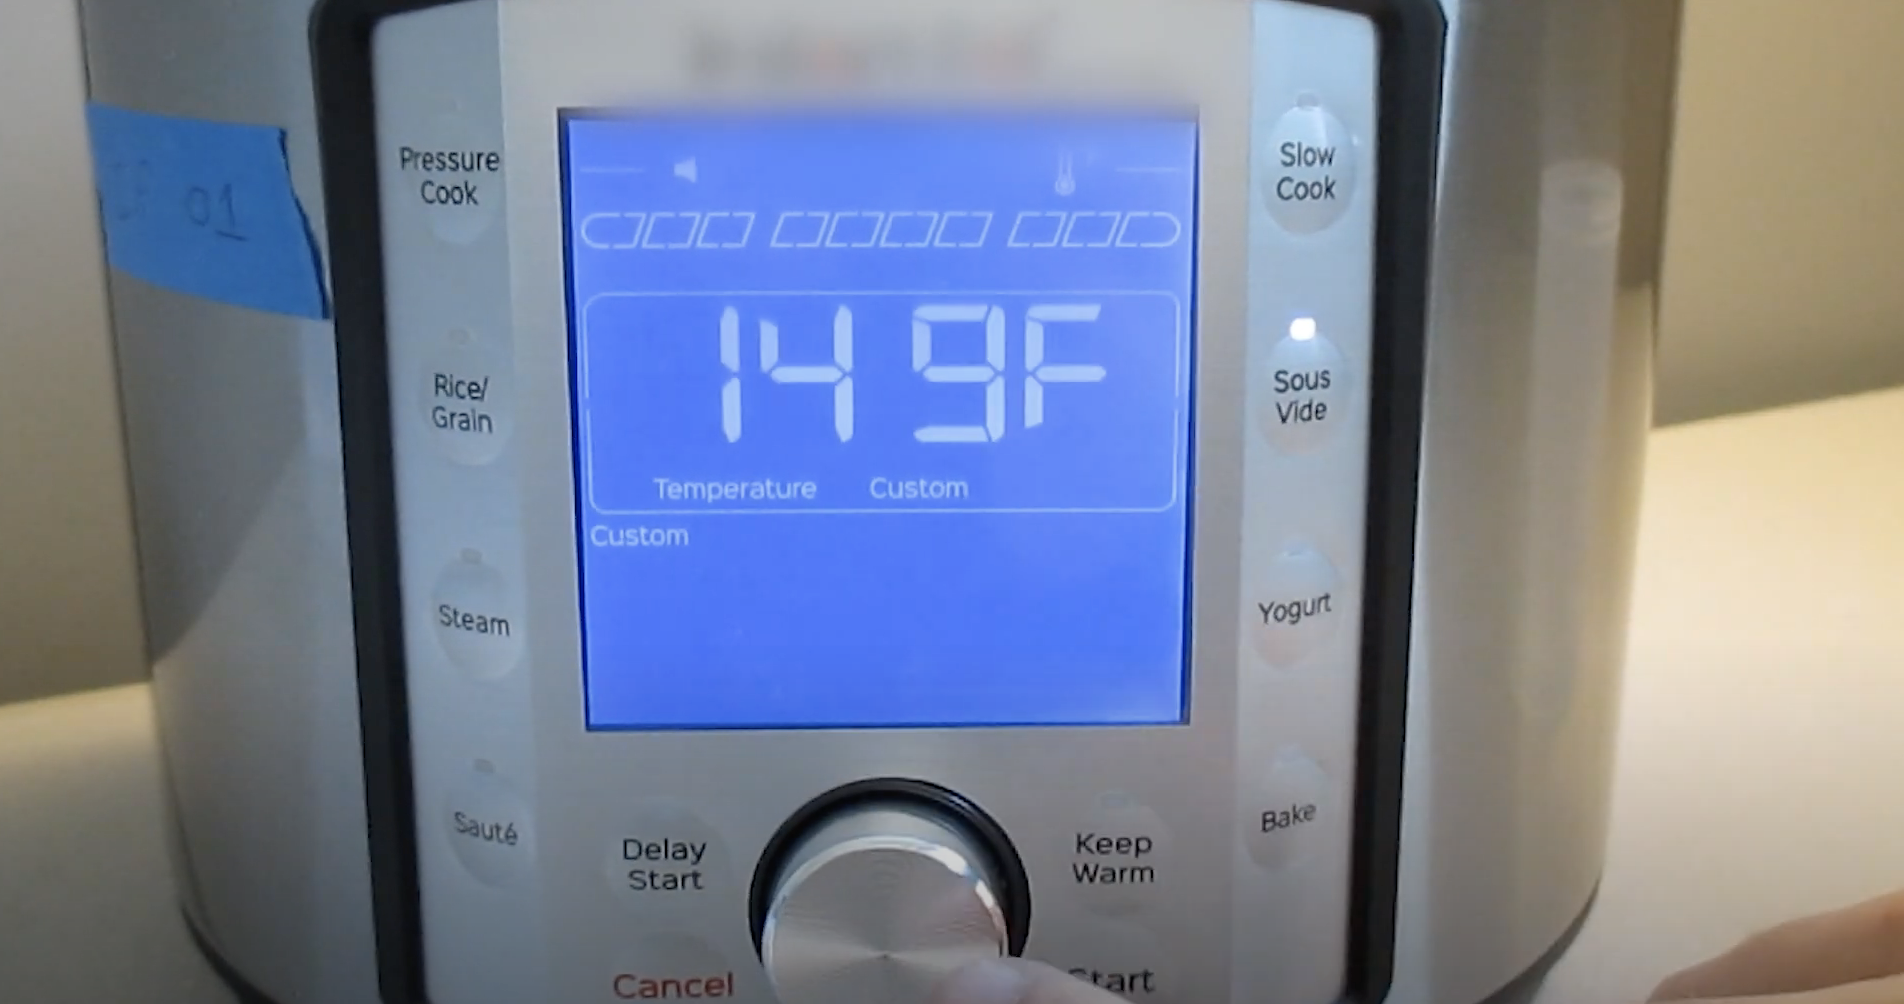 Photo of the temperature setting on an Instant Pot